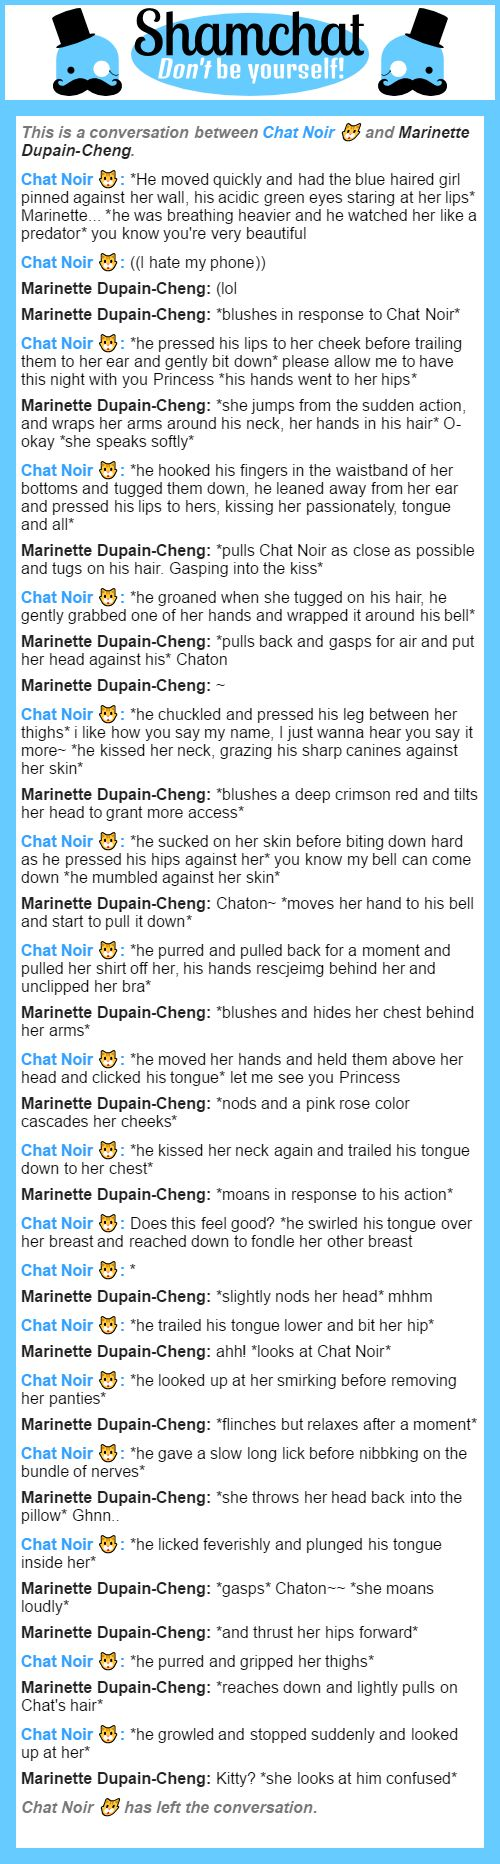 A conversation between Marinette Dupain-Cheng and Chat Noir 🐱 WARNING MATURE!